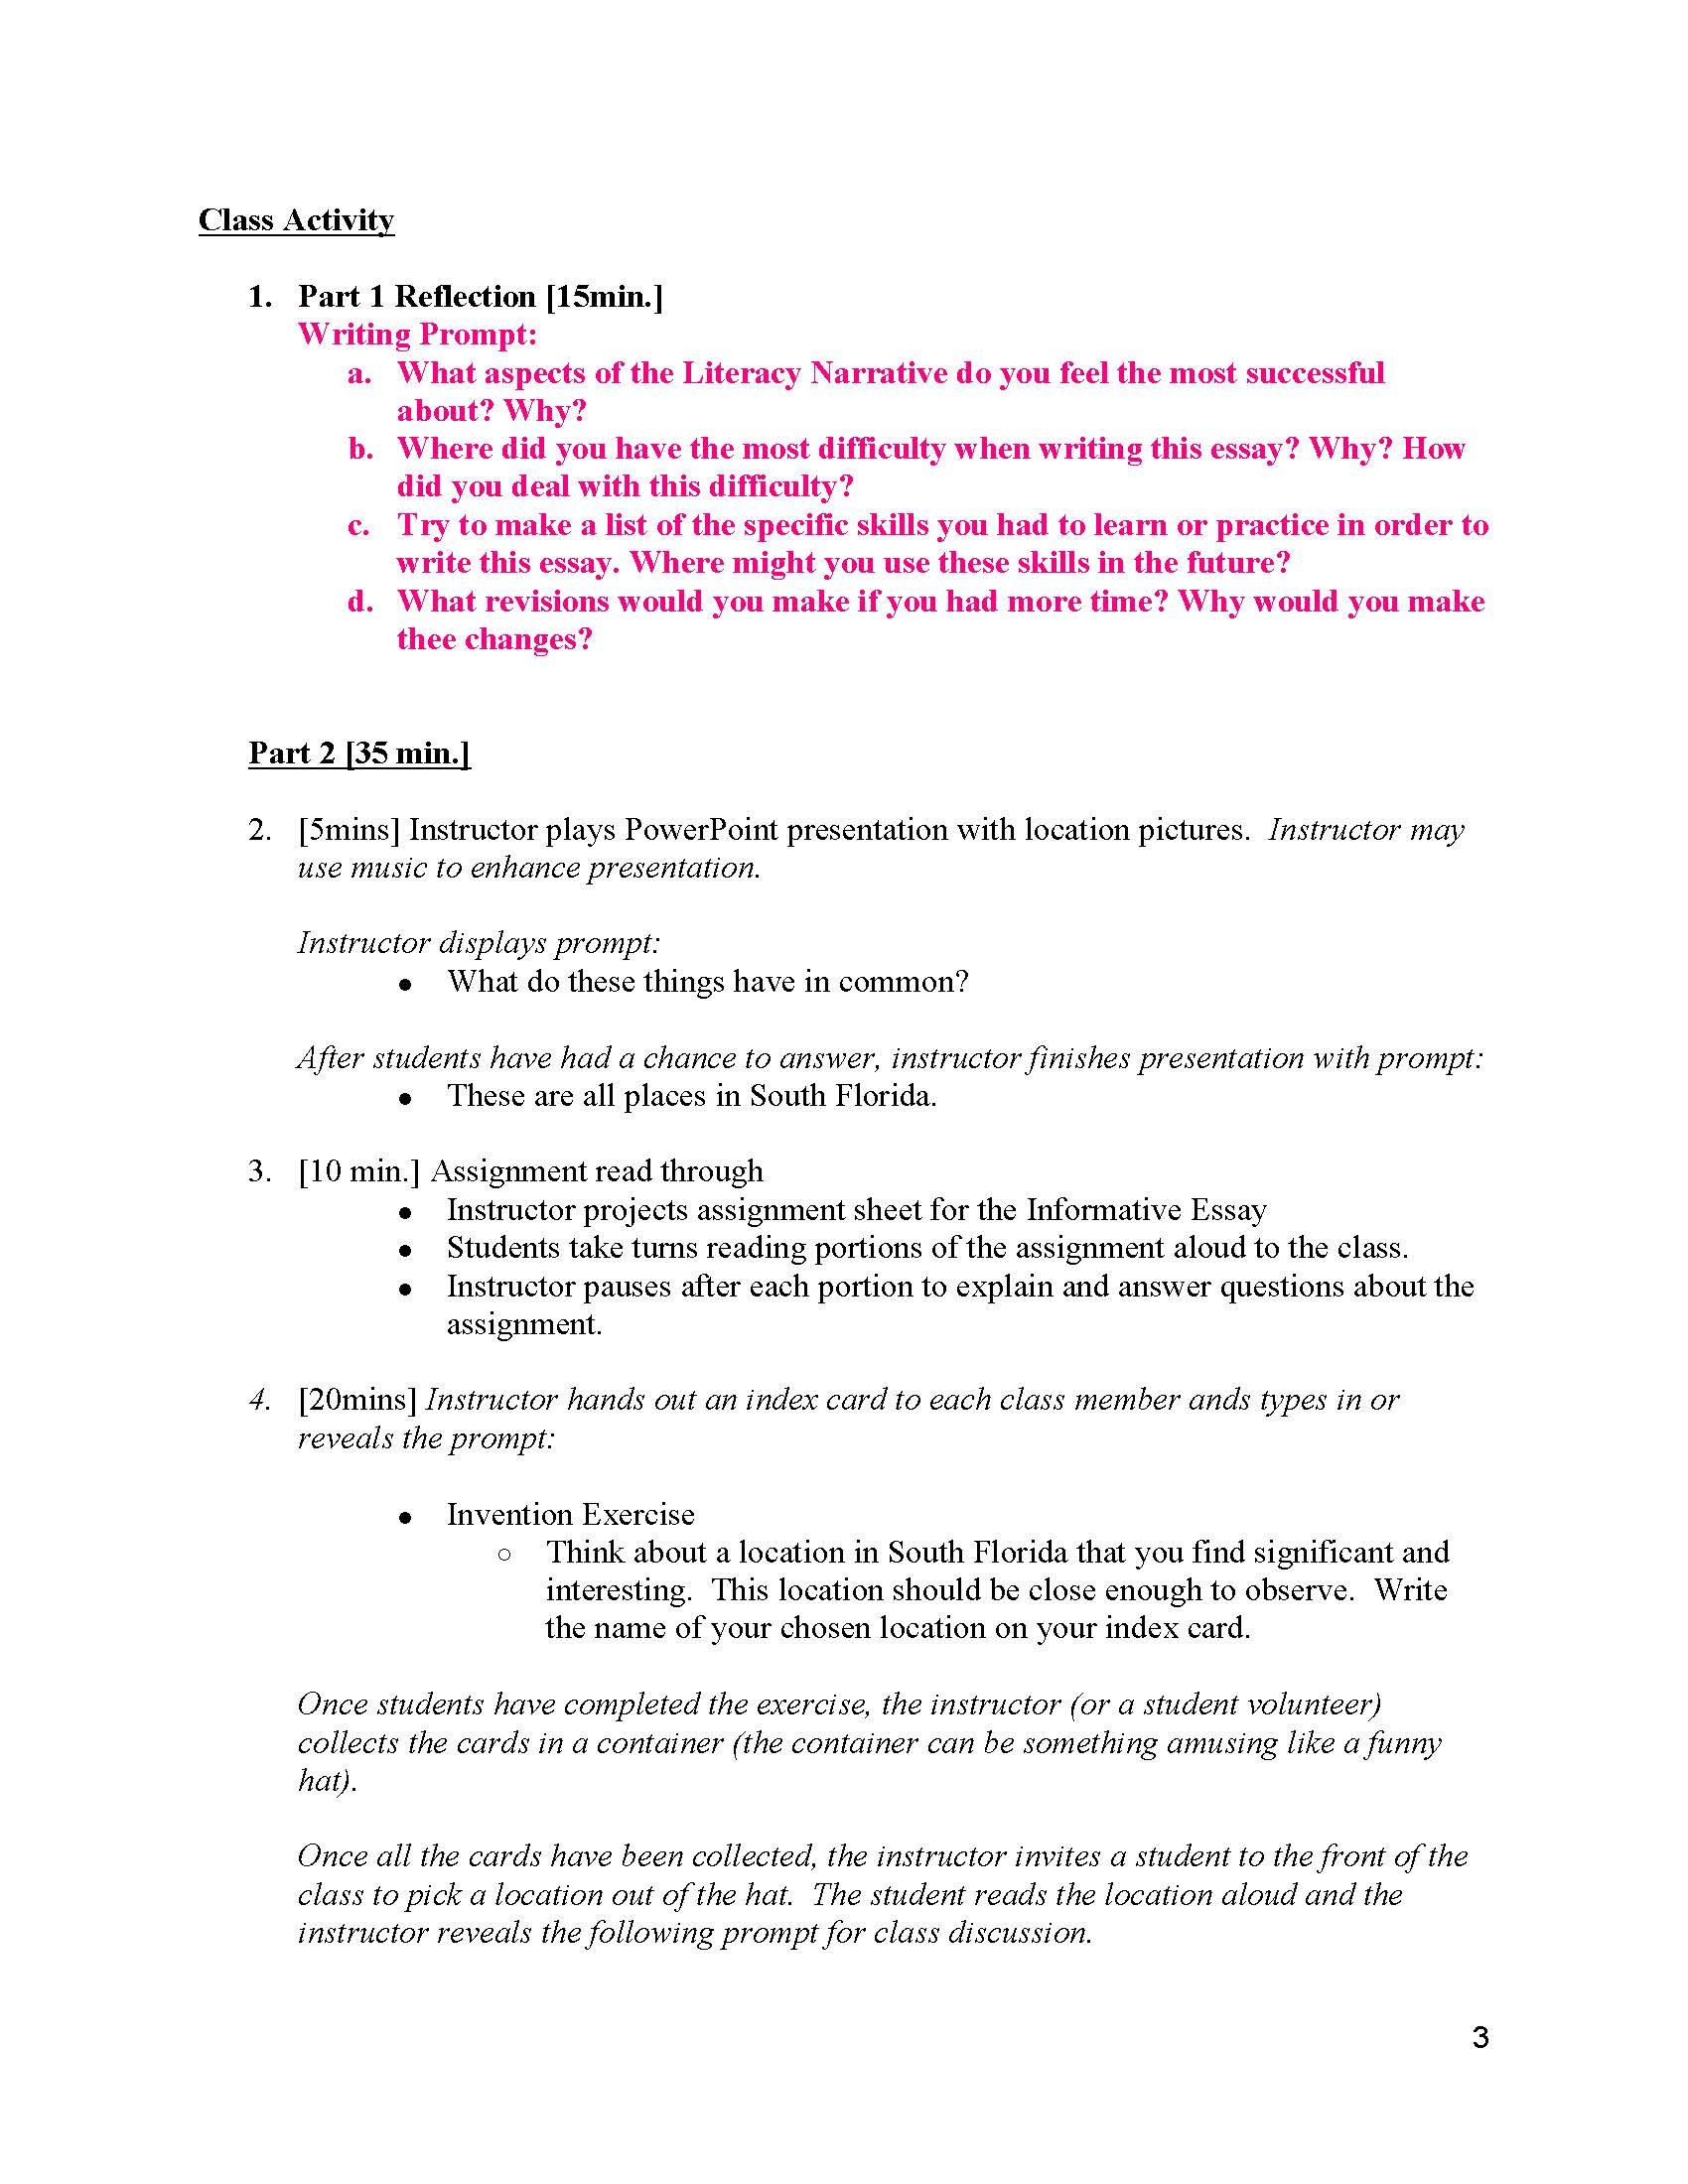 019 Informative Essay Example Unit 2 Plans Instructor Copy Page 03 Dreaded Rubric Middle School Graphic Organizer Full